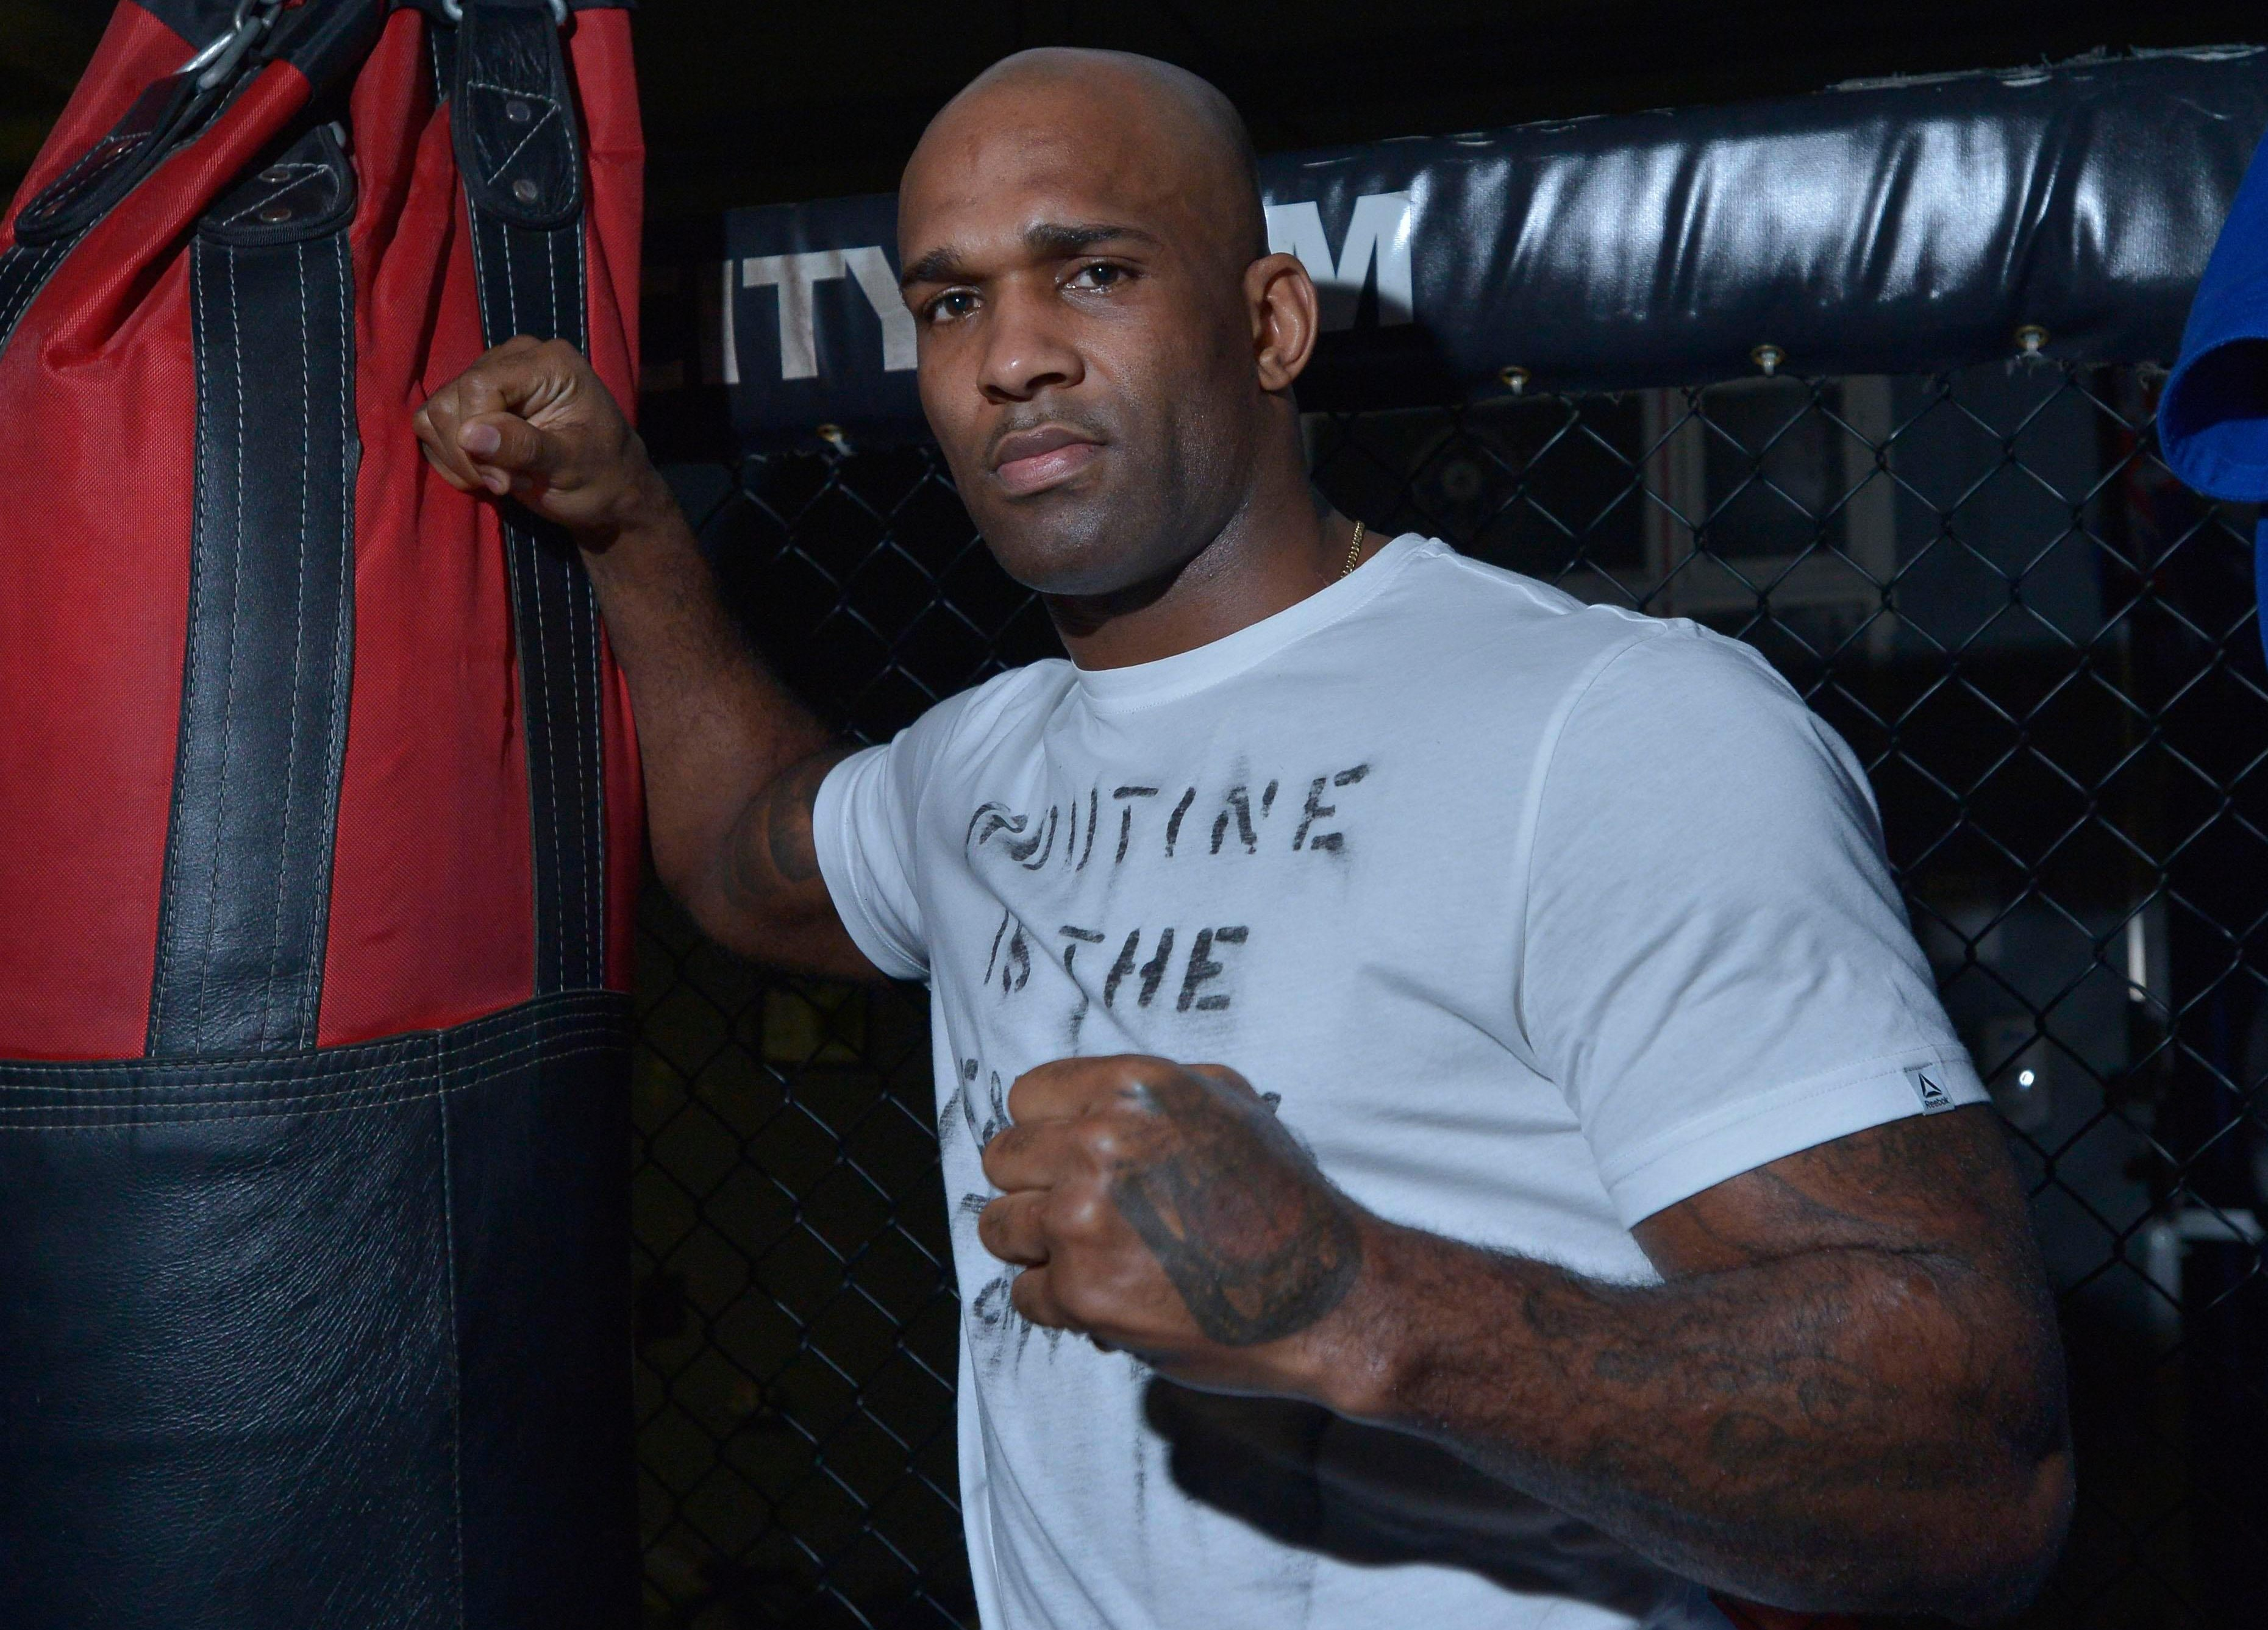 UFC ace Jimi Manuwa will have some very special supporters on Saturday